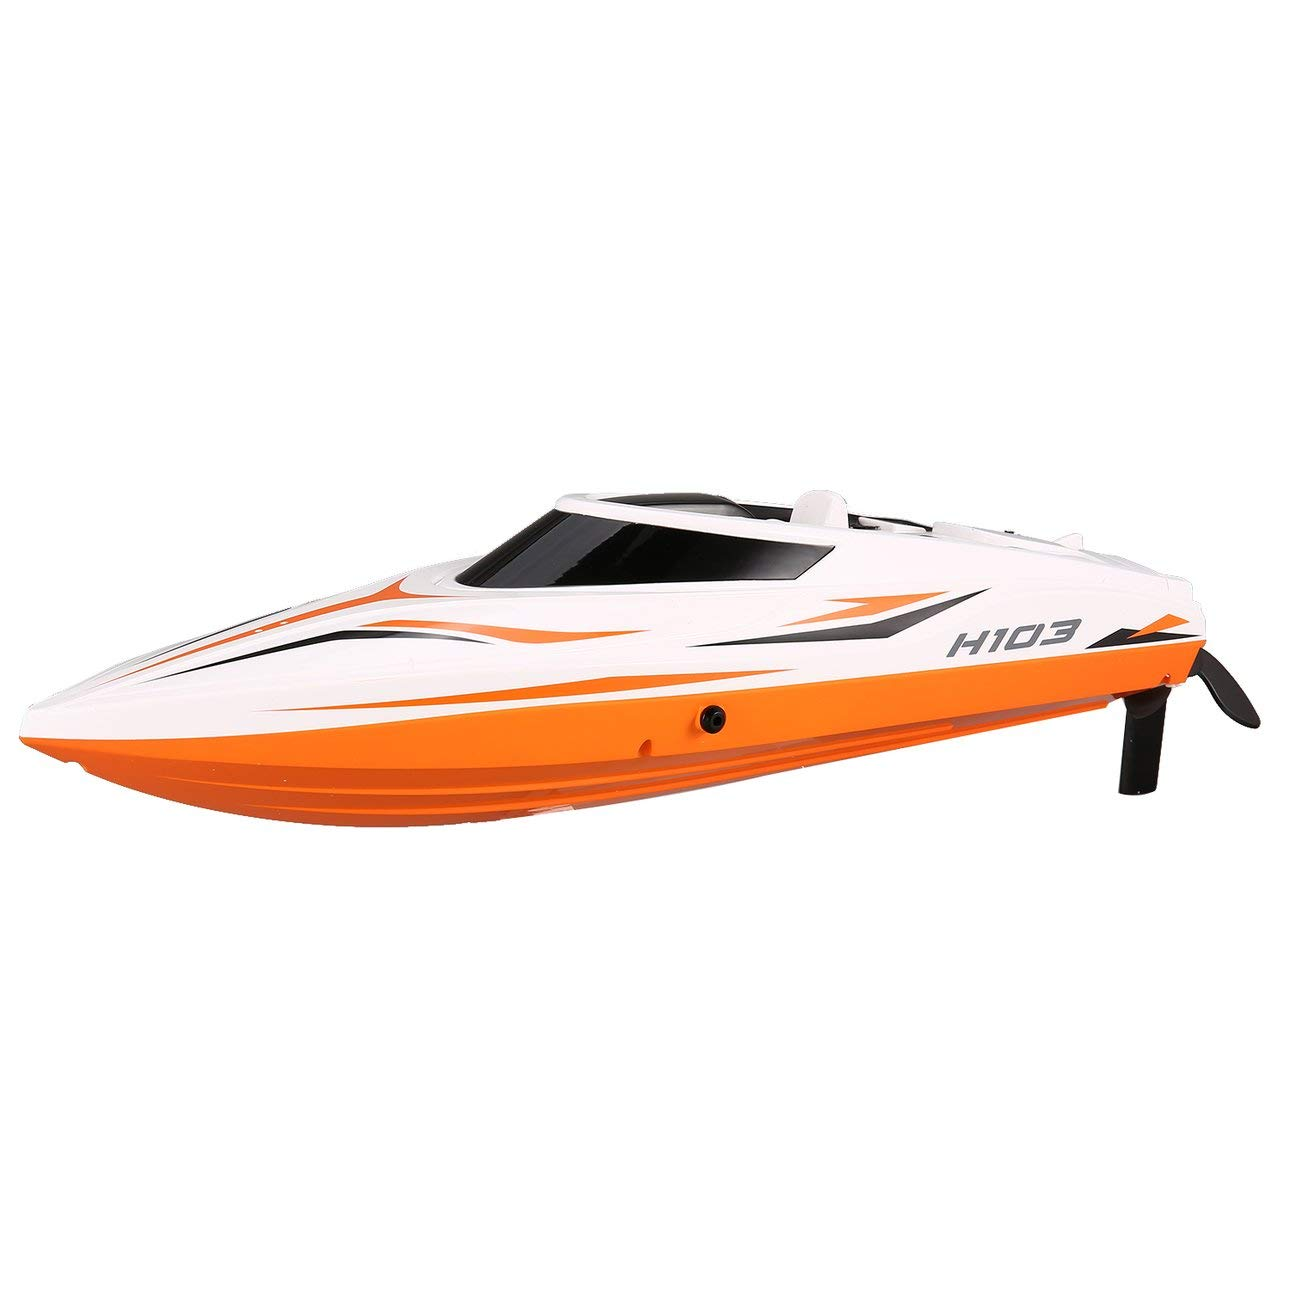 Liobaba 2.4G 4CH 30km/HRC Boat High Speed Racing 28km/h Remote Control Boat 180° Flip LCD Screen as Gift Children Toy Kid